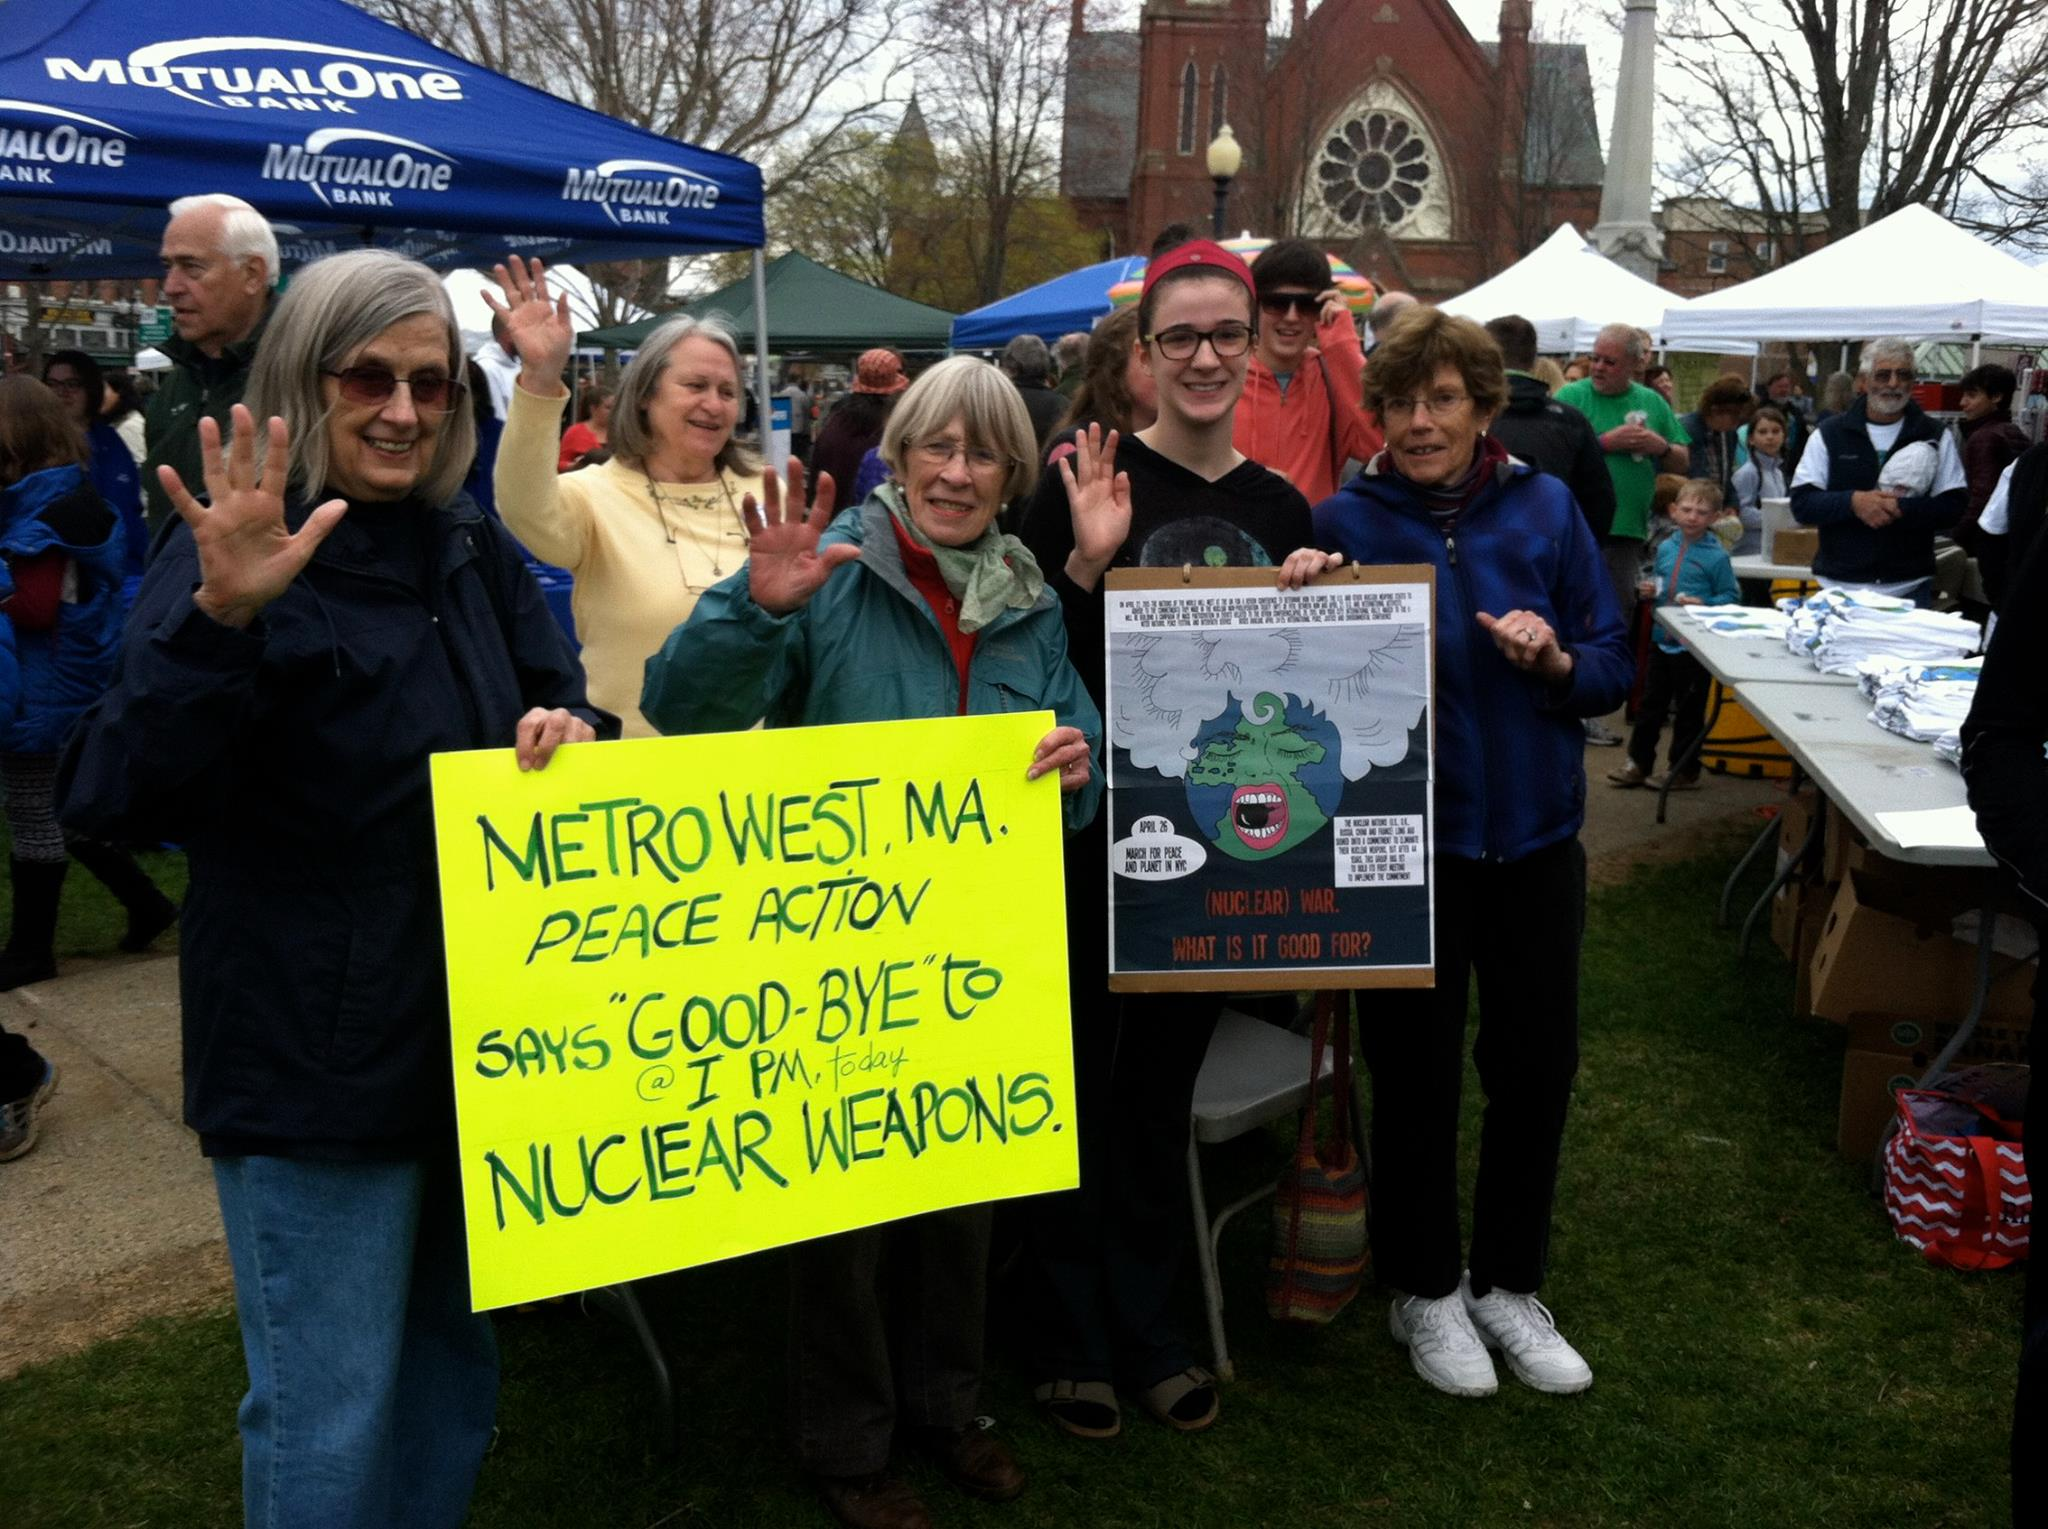 In Massachusetts, Metrowest Peace Action and friends waves goodbye to nuclear weapons at the Natick Earth Day Festival.